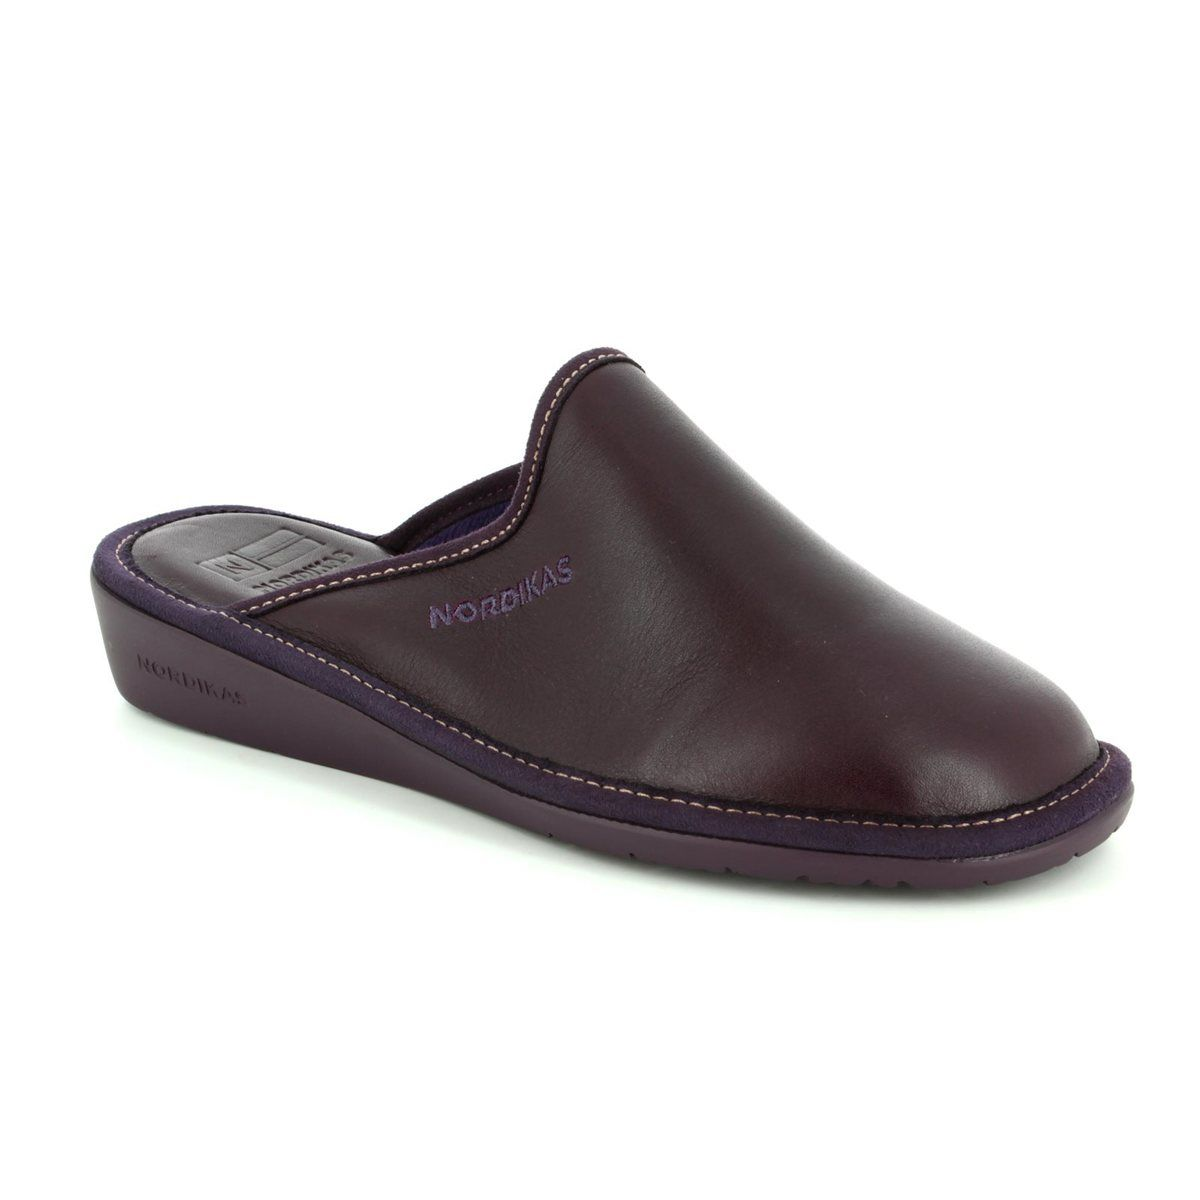 eefae5de93ec7 Nordikas Slipper Mules - Purple - 0347/8 MULEA NEW